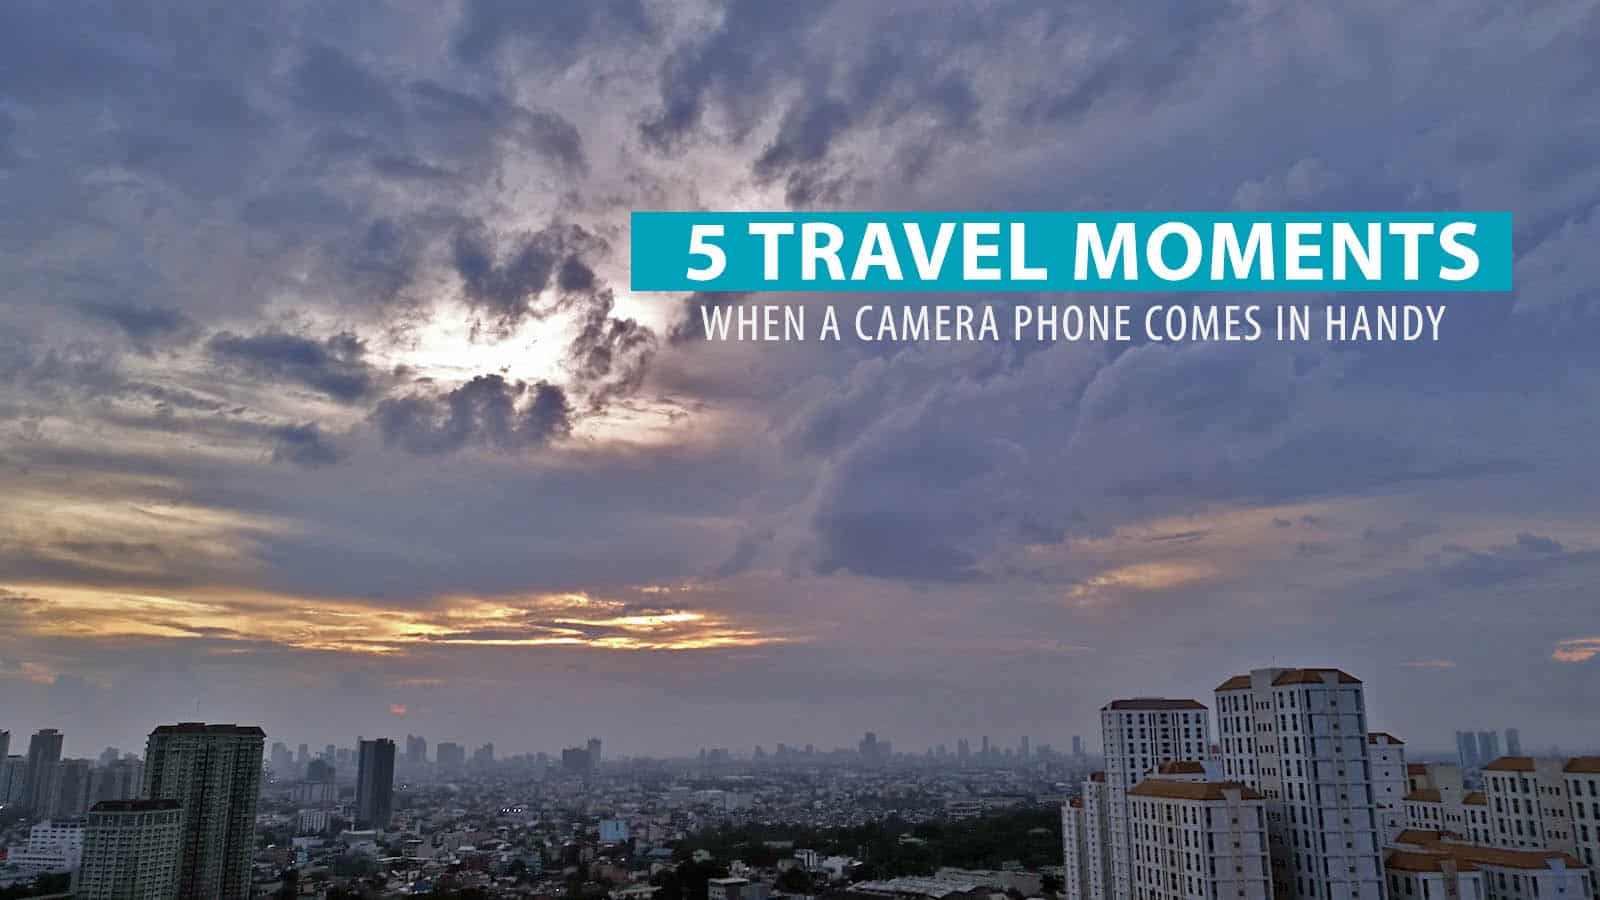 5 Travel Moments When a Great Camera Phone Comes In Handy